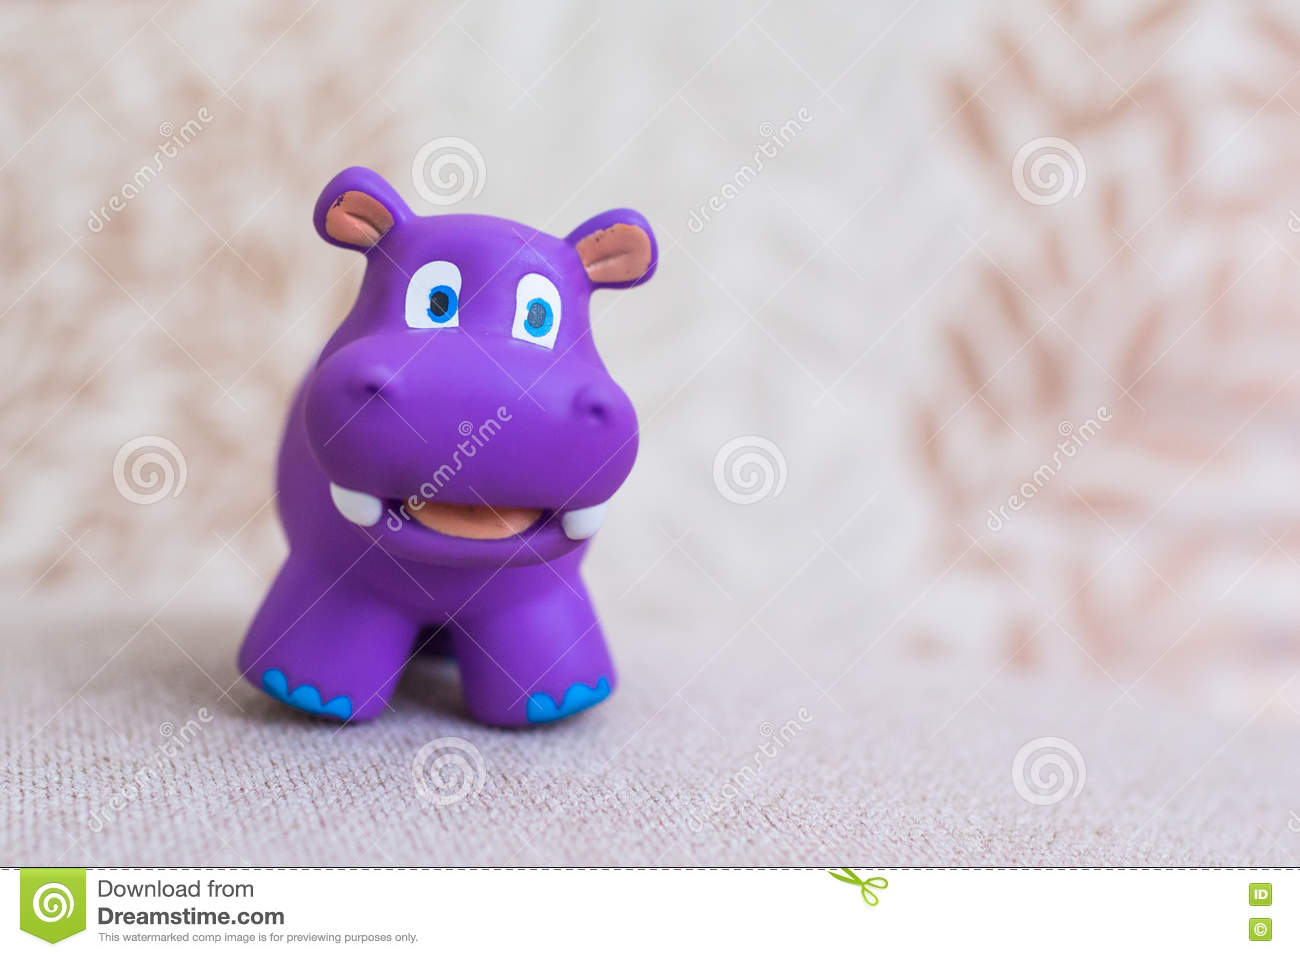 Smiling hippo toy violet